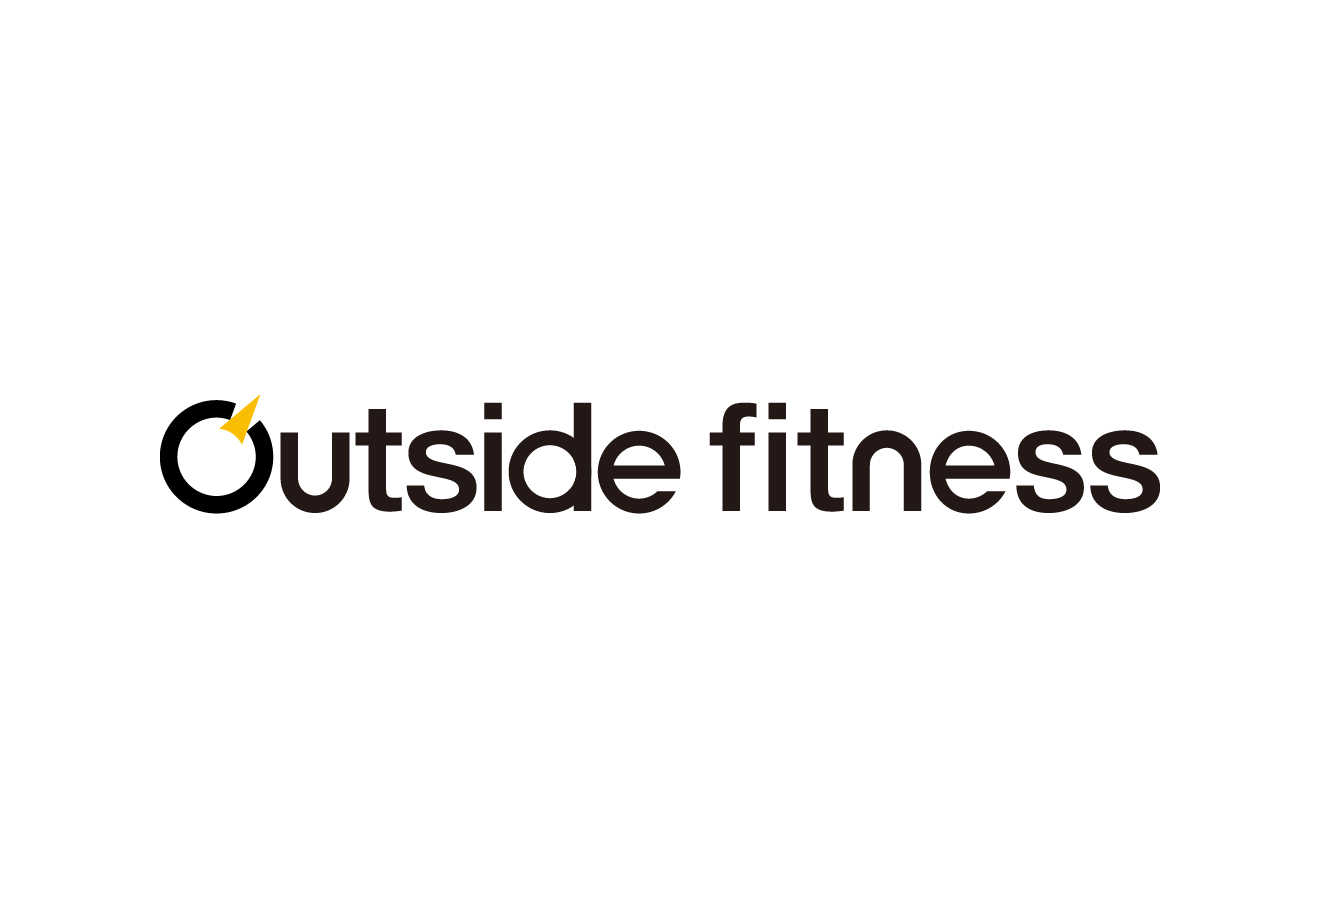 Outside fitness Logo